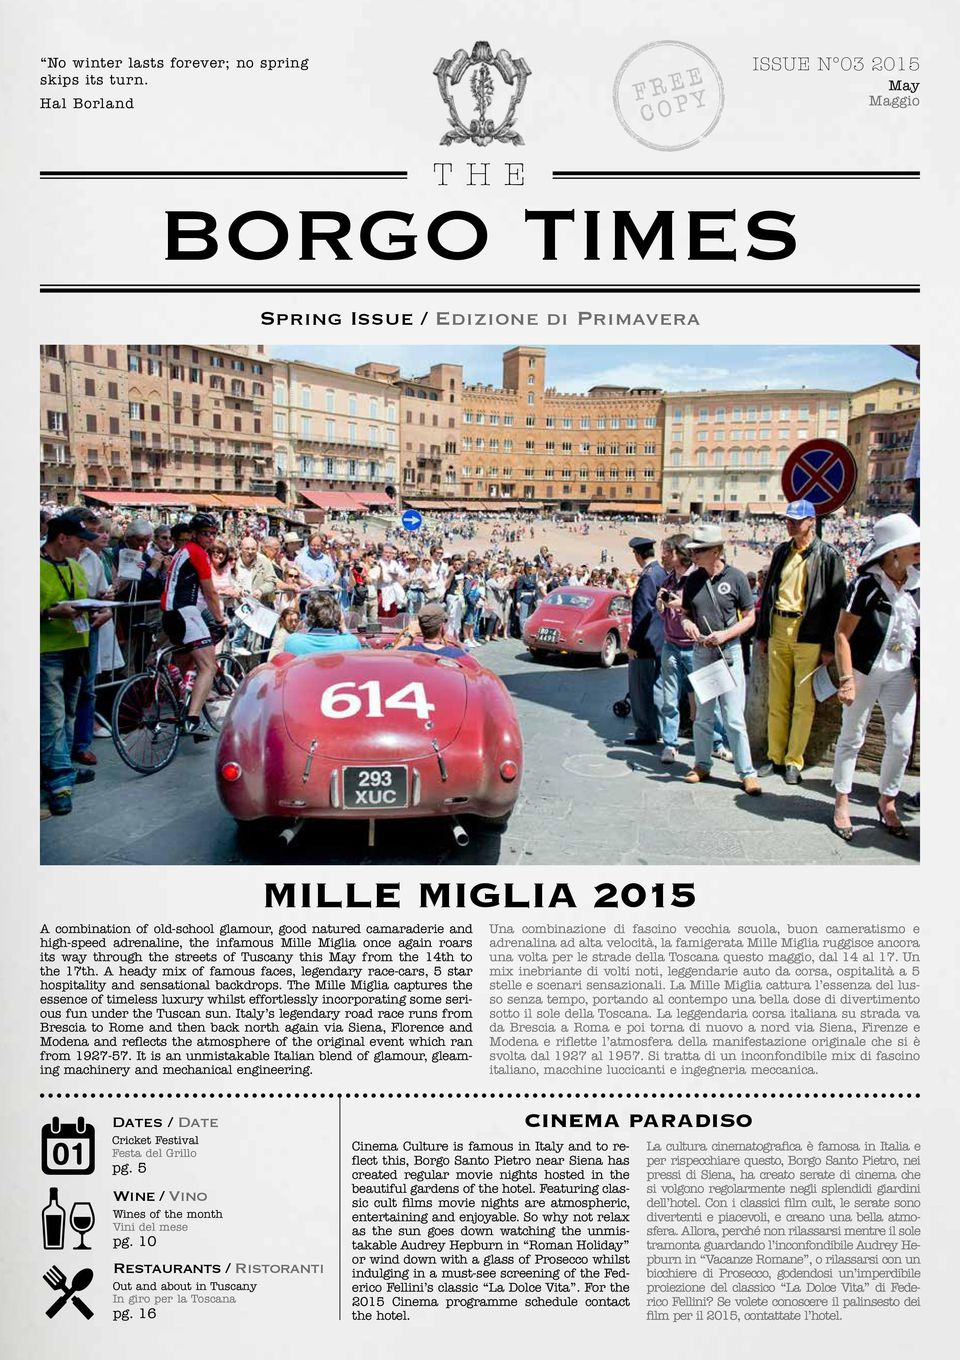 Miglia once again roars its way through the streets of Tuscany this May from the 14th to the 17th. A heady mix of famous faces, legendary race-cars, 5 star hospitality and sensational backdrops.